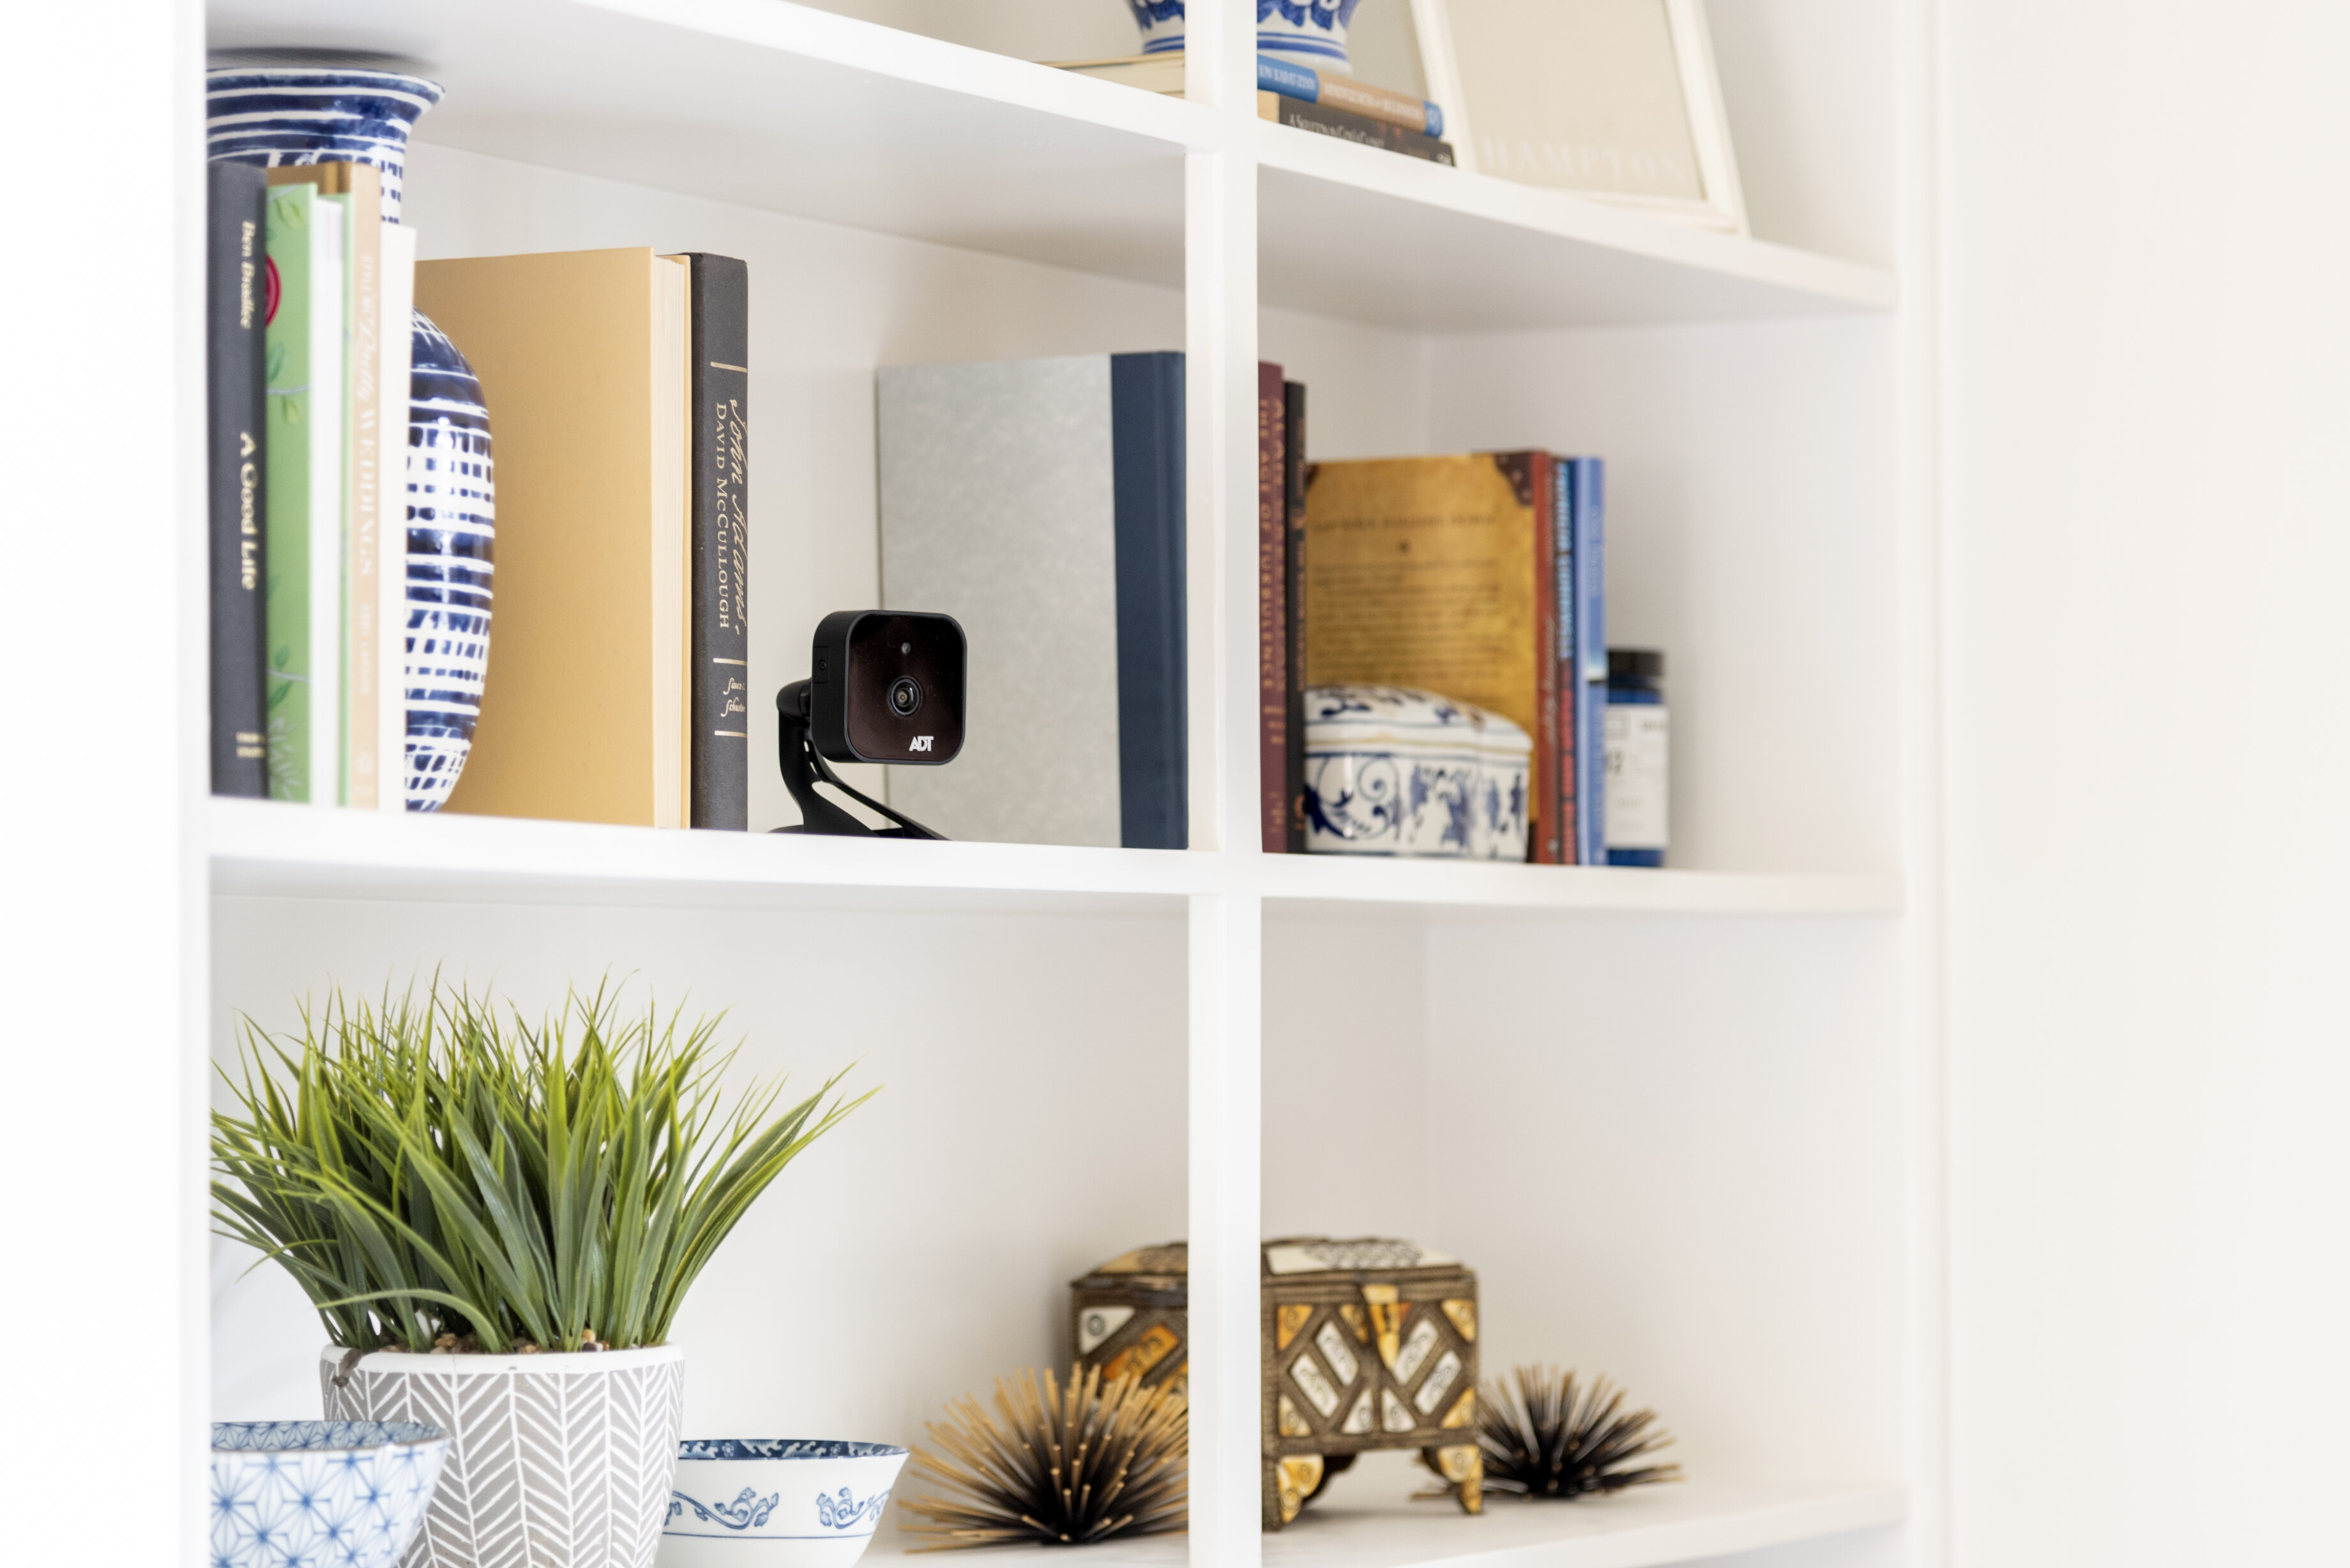 An ADT security camera sits on a white bookshelf with colorful books and planters.